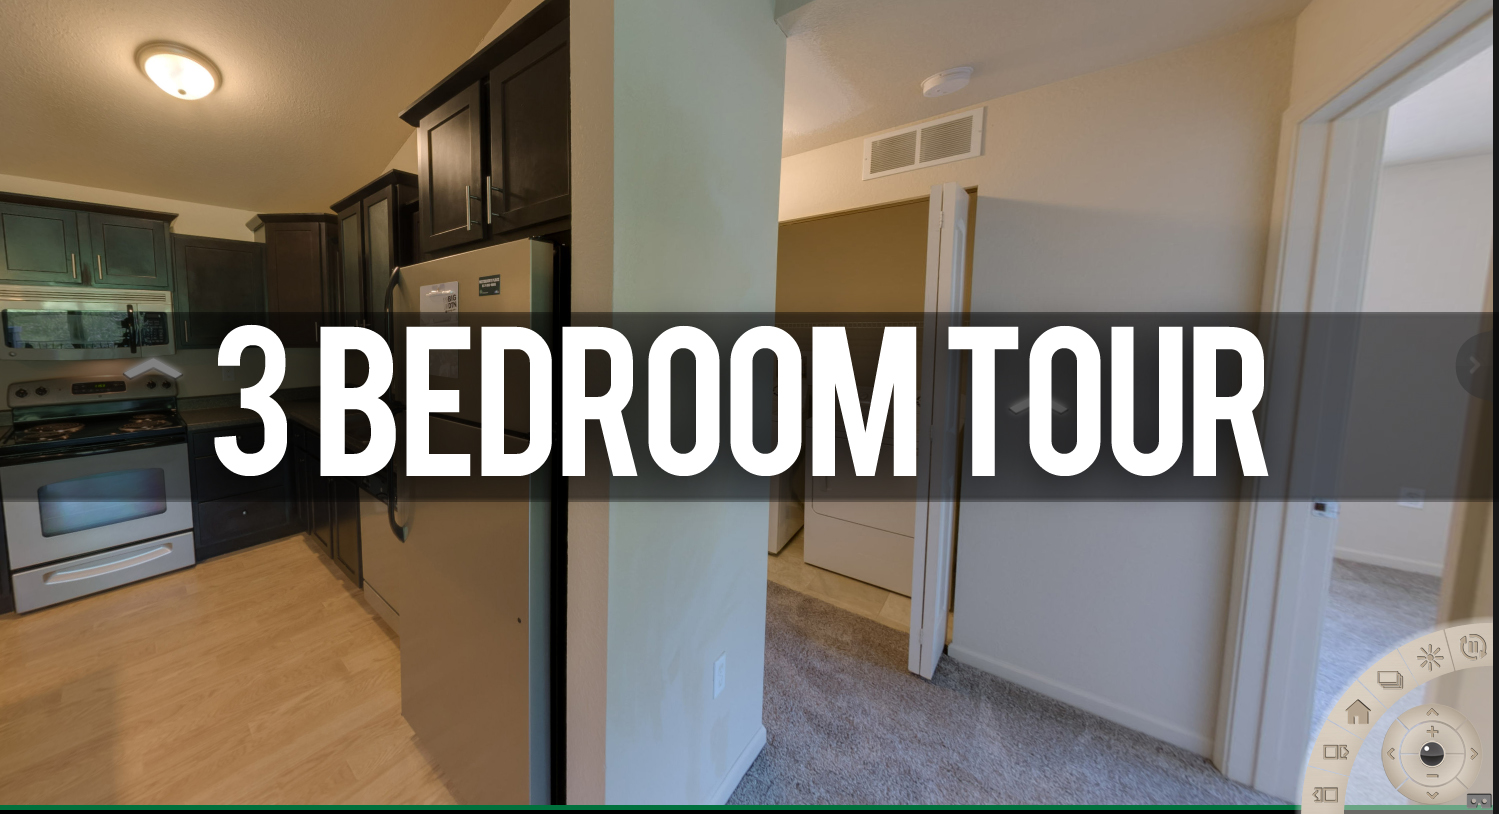 Tour 3 Bedroom Floor Plan at Waterbury Place Apartments near Michigan State University